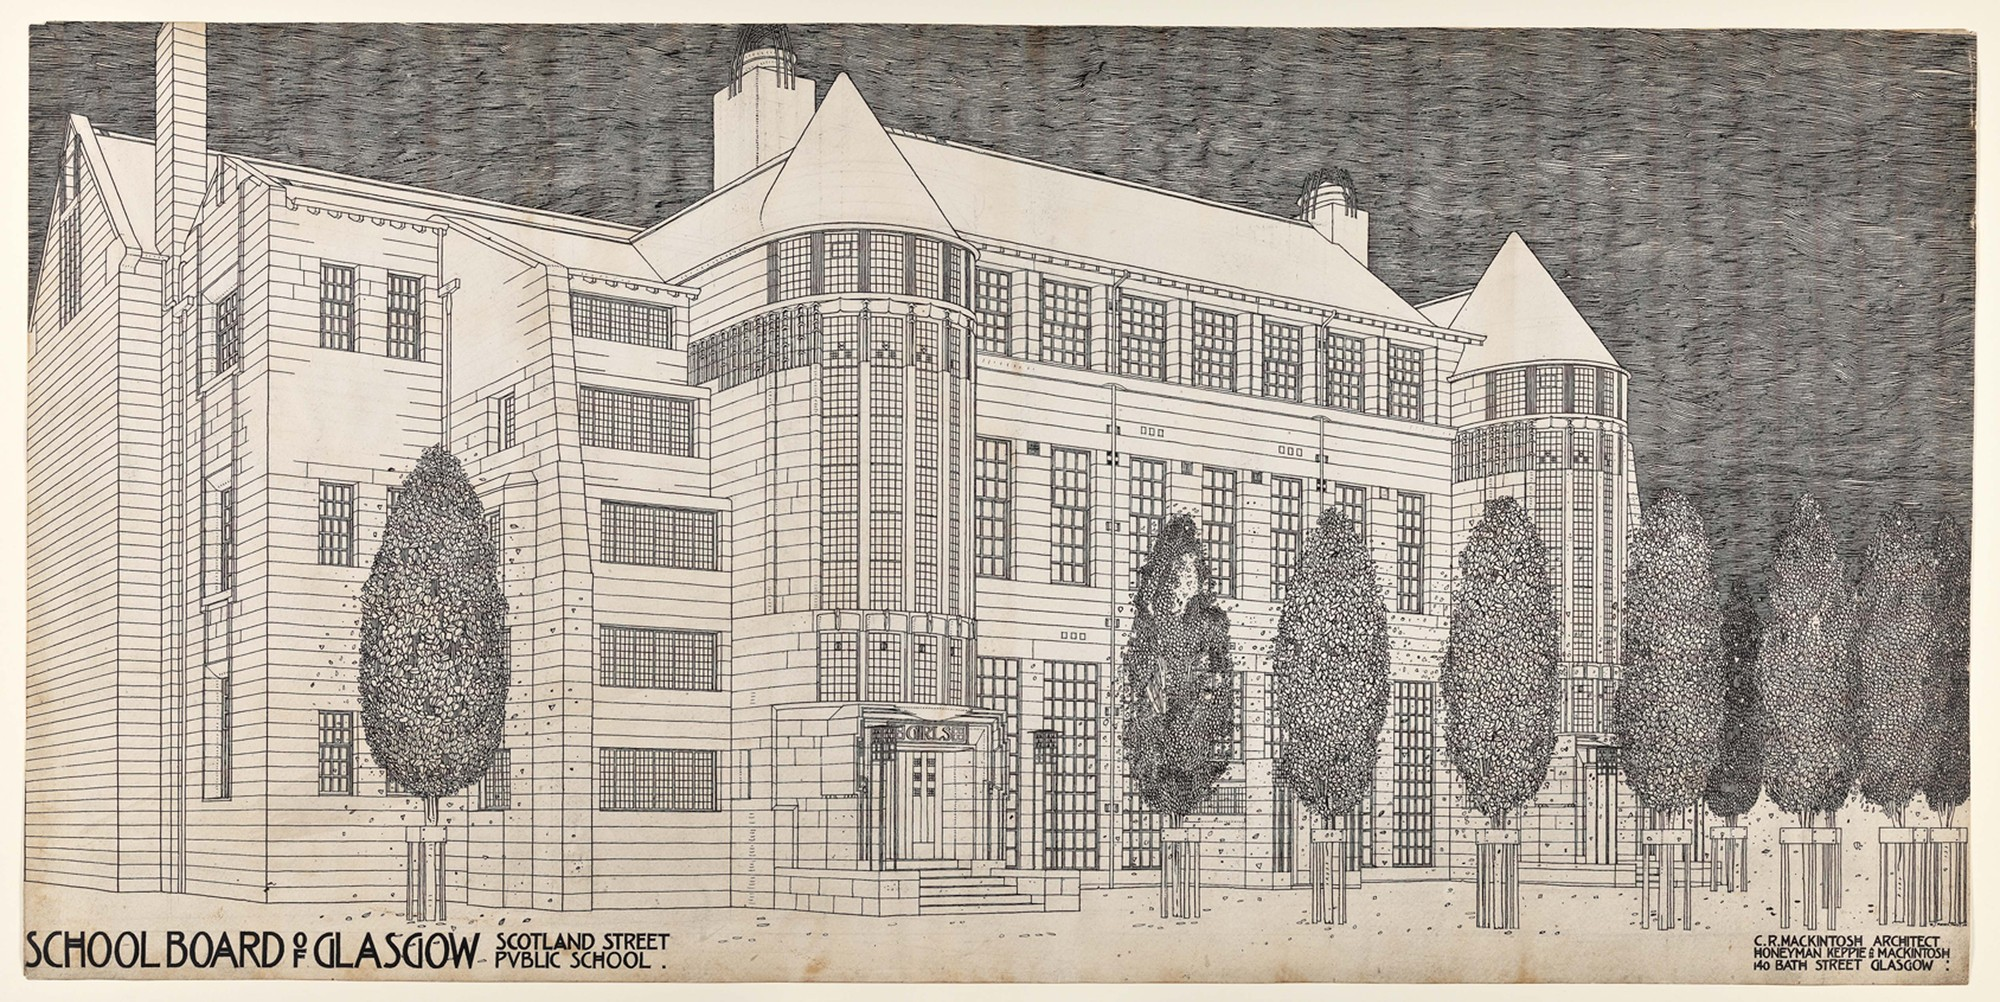 charles rennie mackintosh and scottish architecture essay In this essay, i will be discussing how charles rennie mackintosh has contributed to scottish architecture i will investigate his influences and how he affected architecture in scotland over his lifetime born on 7th june 1868 in glasgow, mackintosh became interested in architecture as a profession.